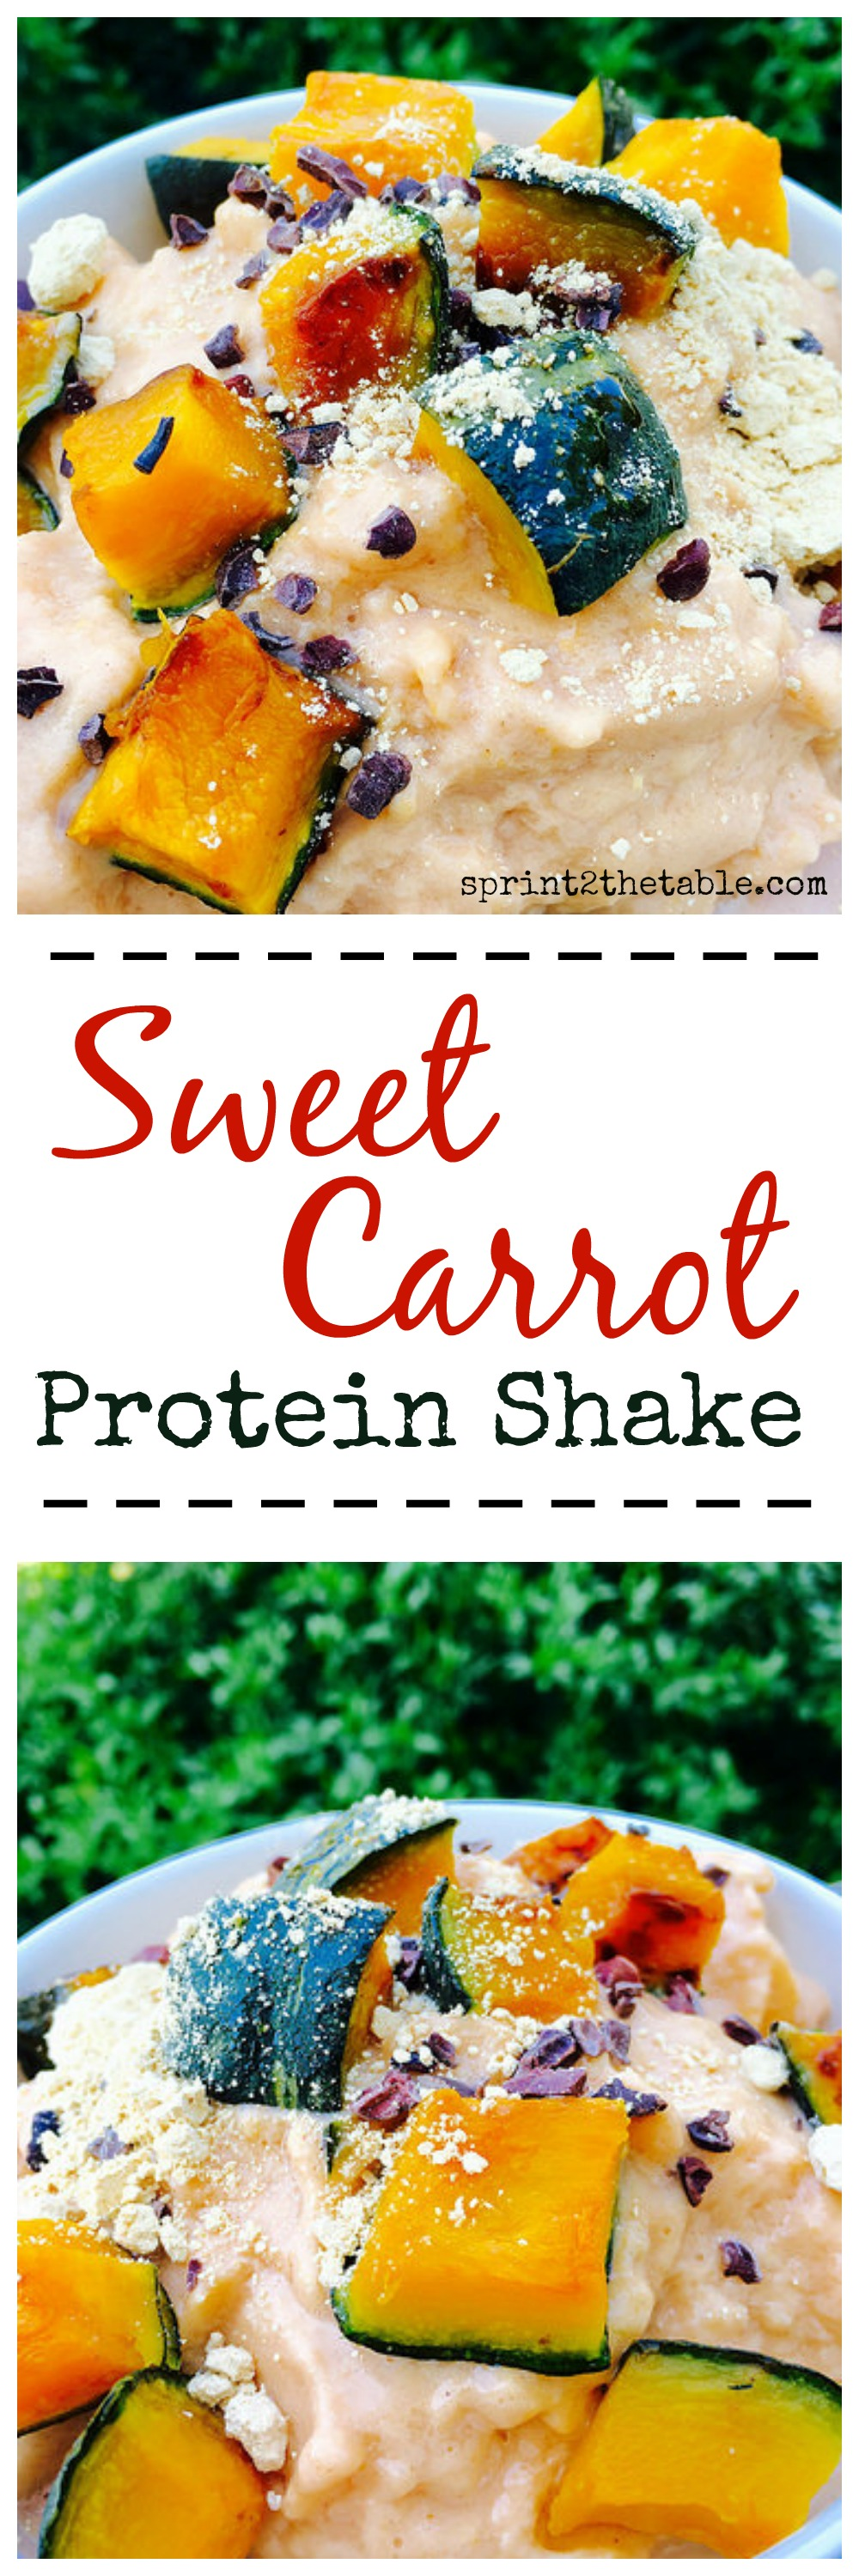 Sweet Carot Protein Shake - deliciously refreshing vegan protein shake after a hot workout!